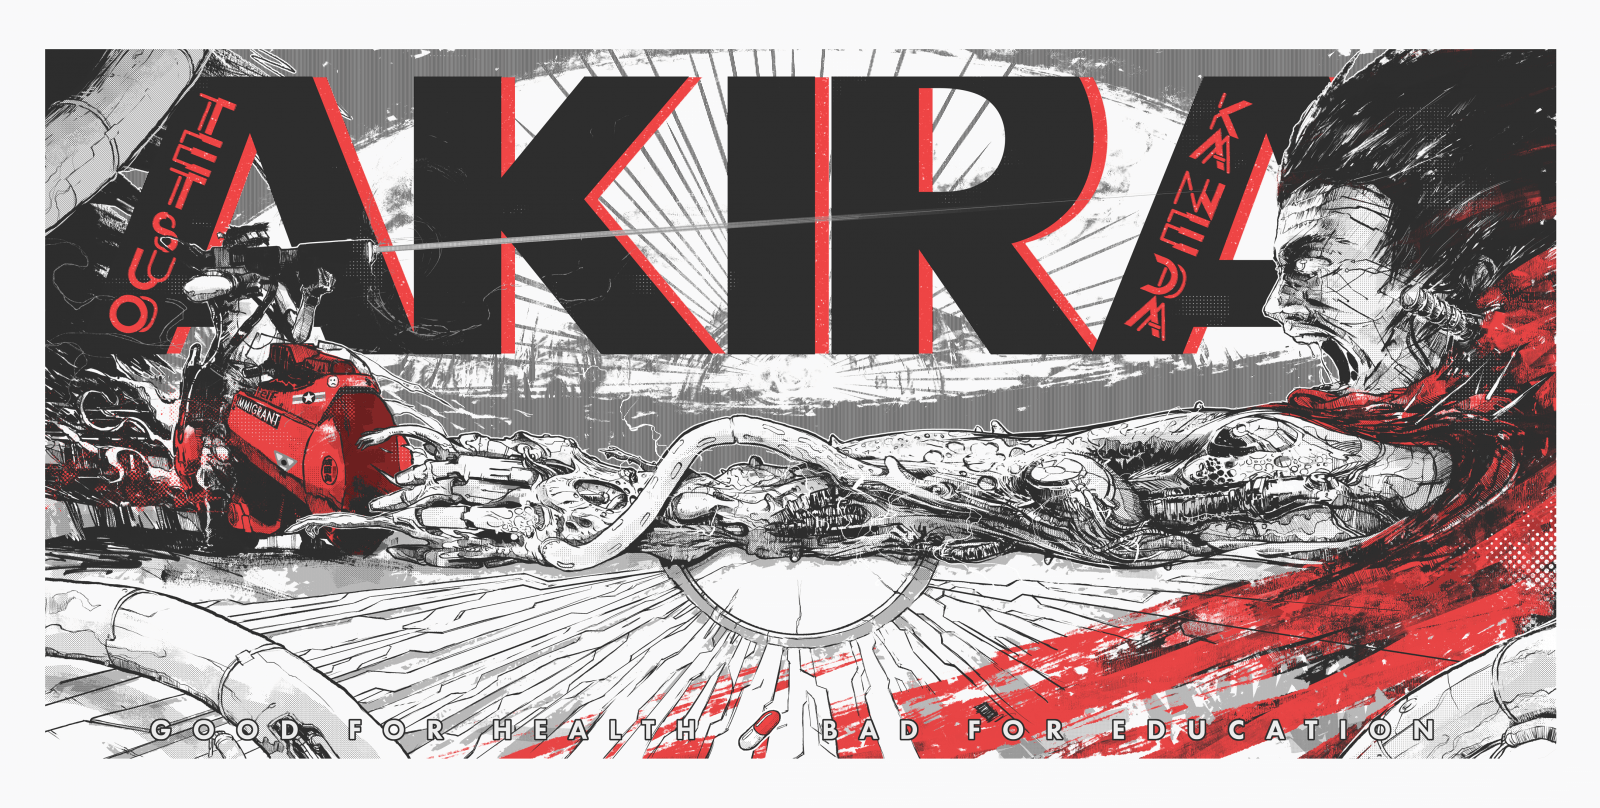 1600x808 Akira (1988) HD Wallpaper From Gallsource.com | Movie posters ...